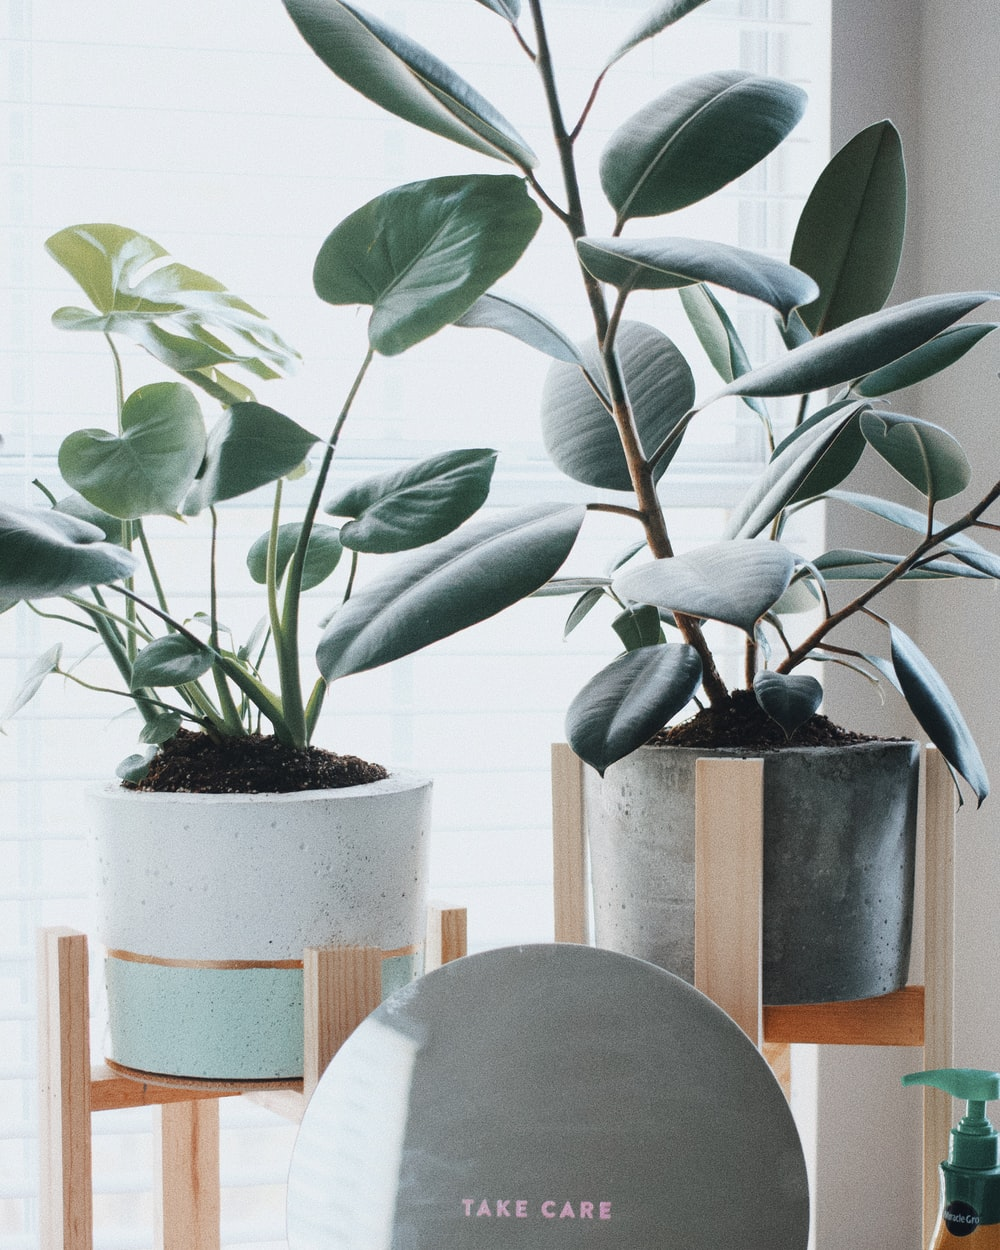 two green potted plants on wooden stands near window